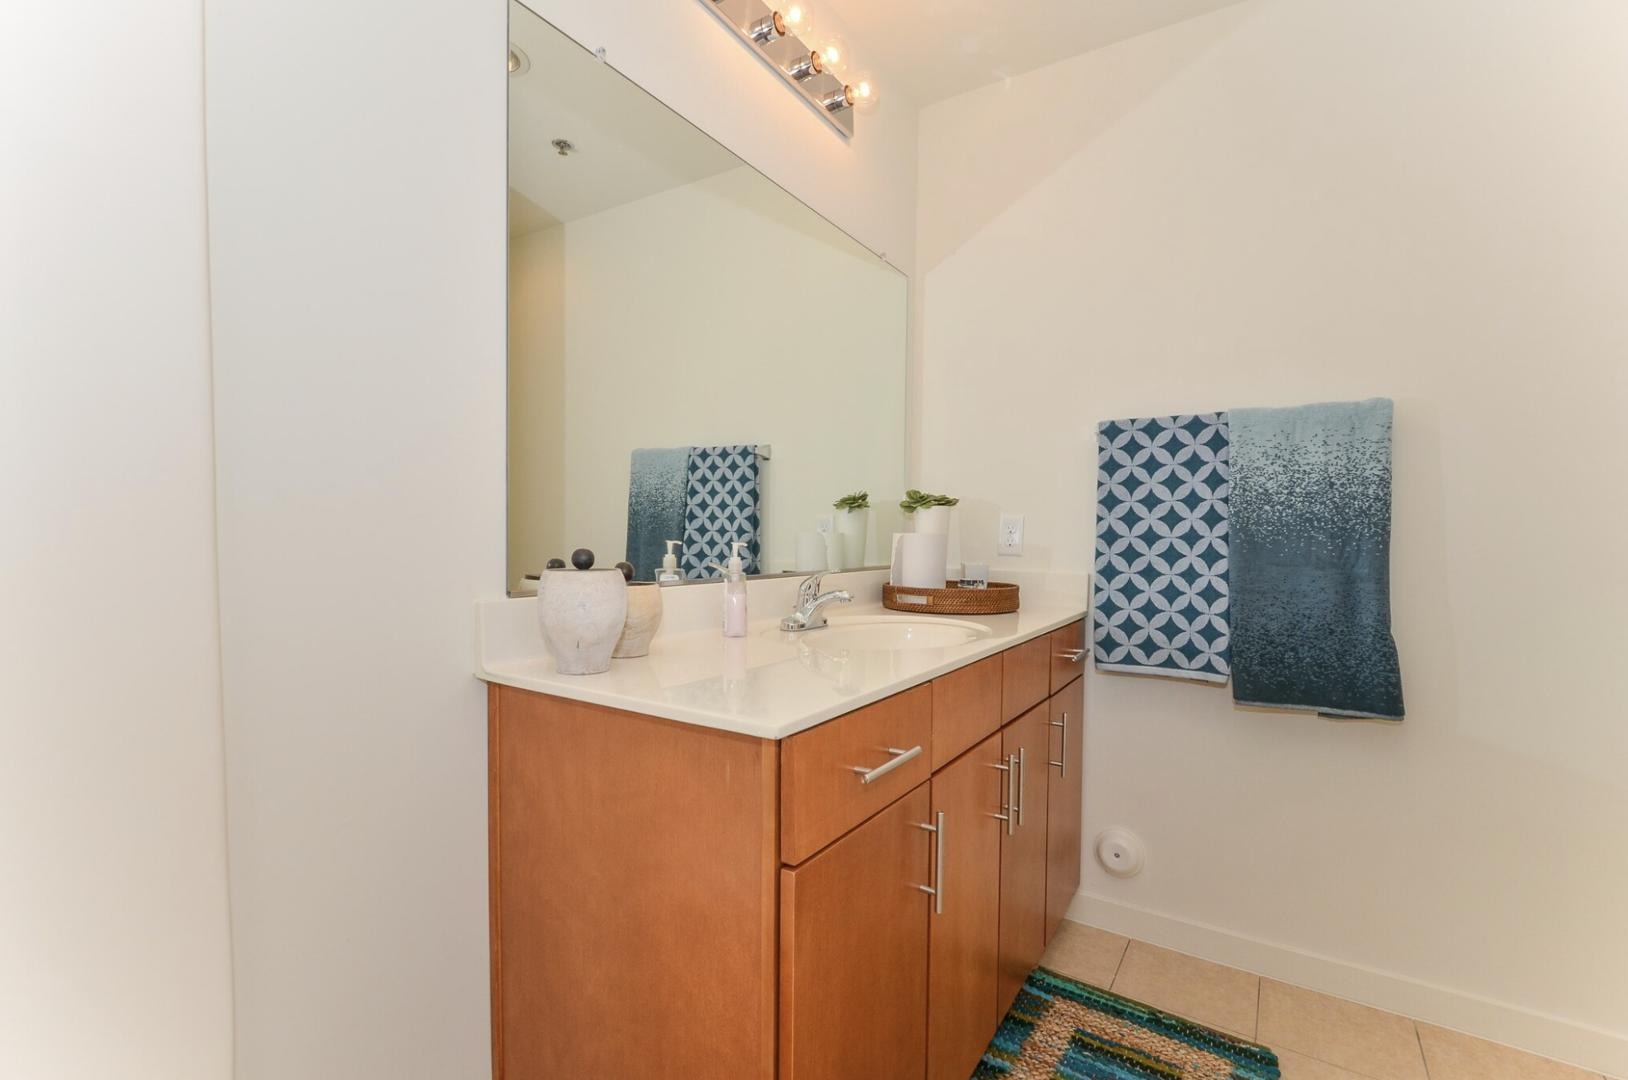 525 E 15th Street #FP - One Bed, Charlotte, NC - 1,075 USD/ month